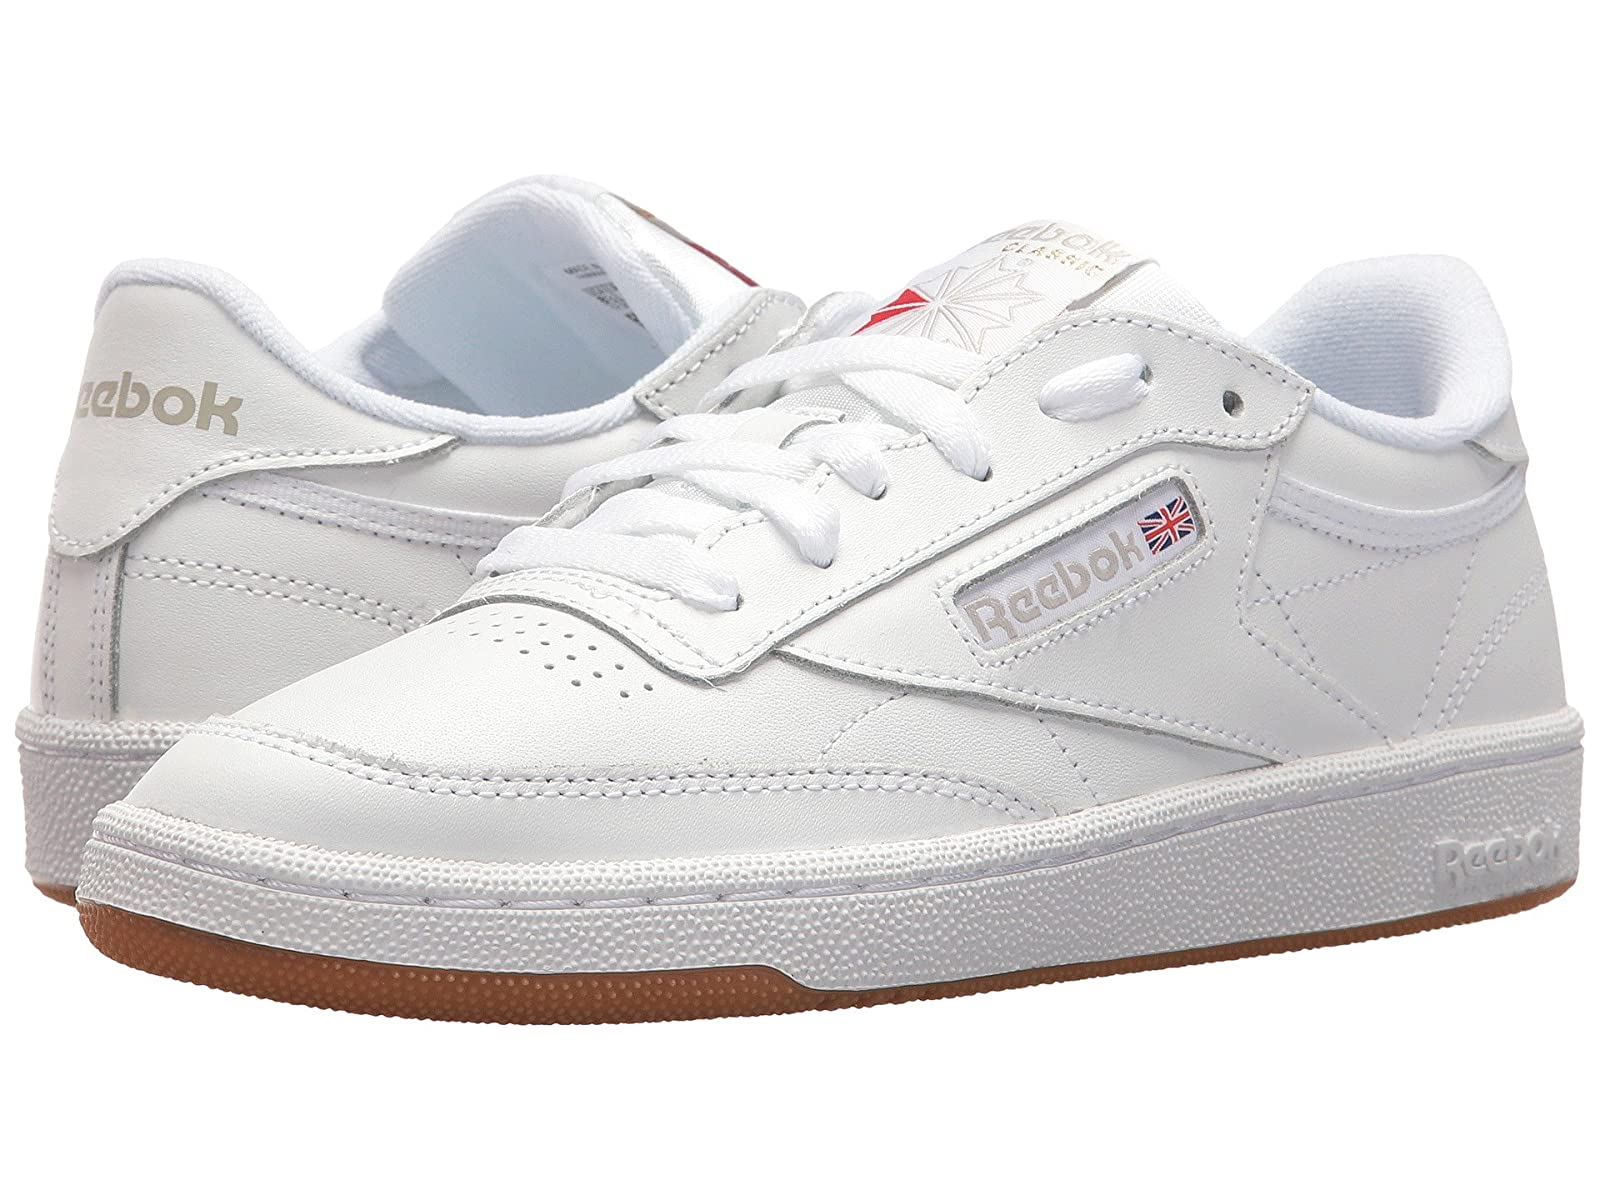 Reebok Lifestyle Club C 85Atmospheric grades have affordable shoes